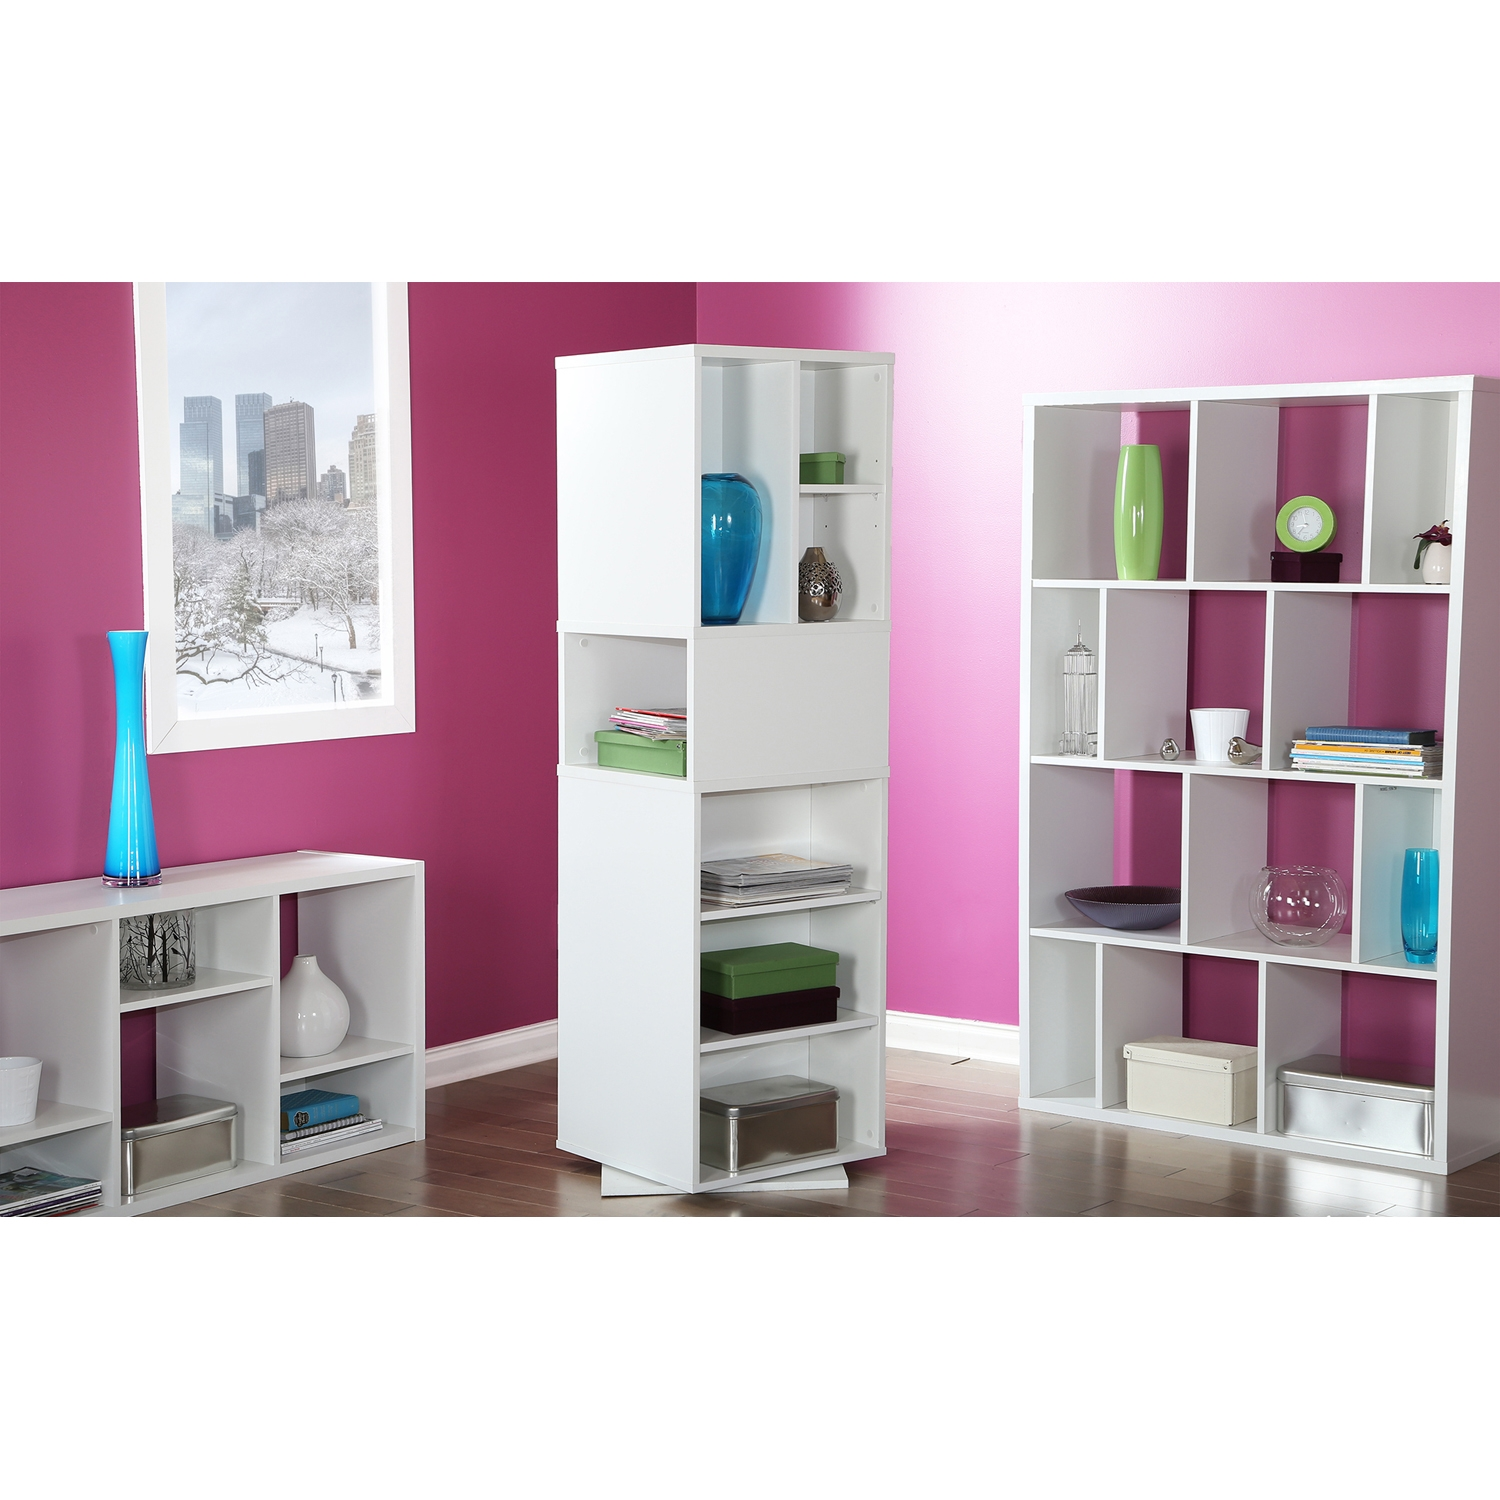 Reveal Shelving Unit - 12 Compartments, Pure White - SS-5150730